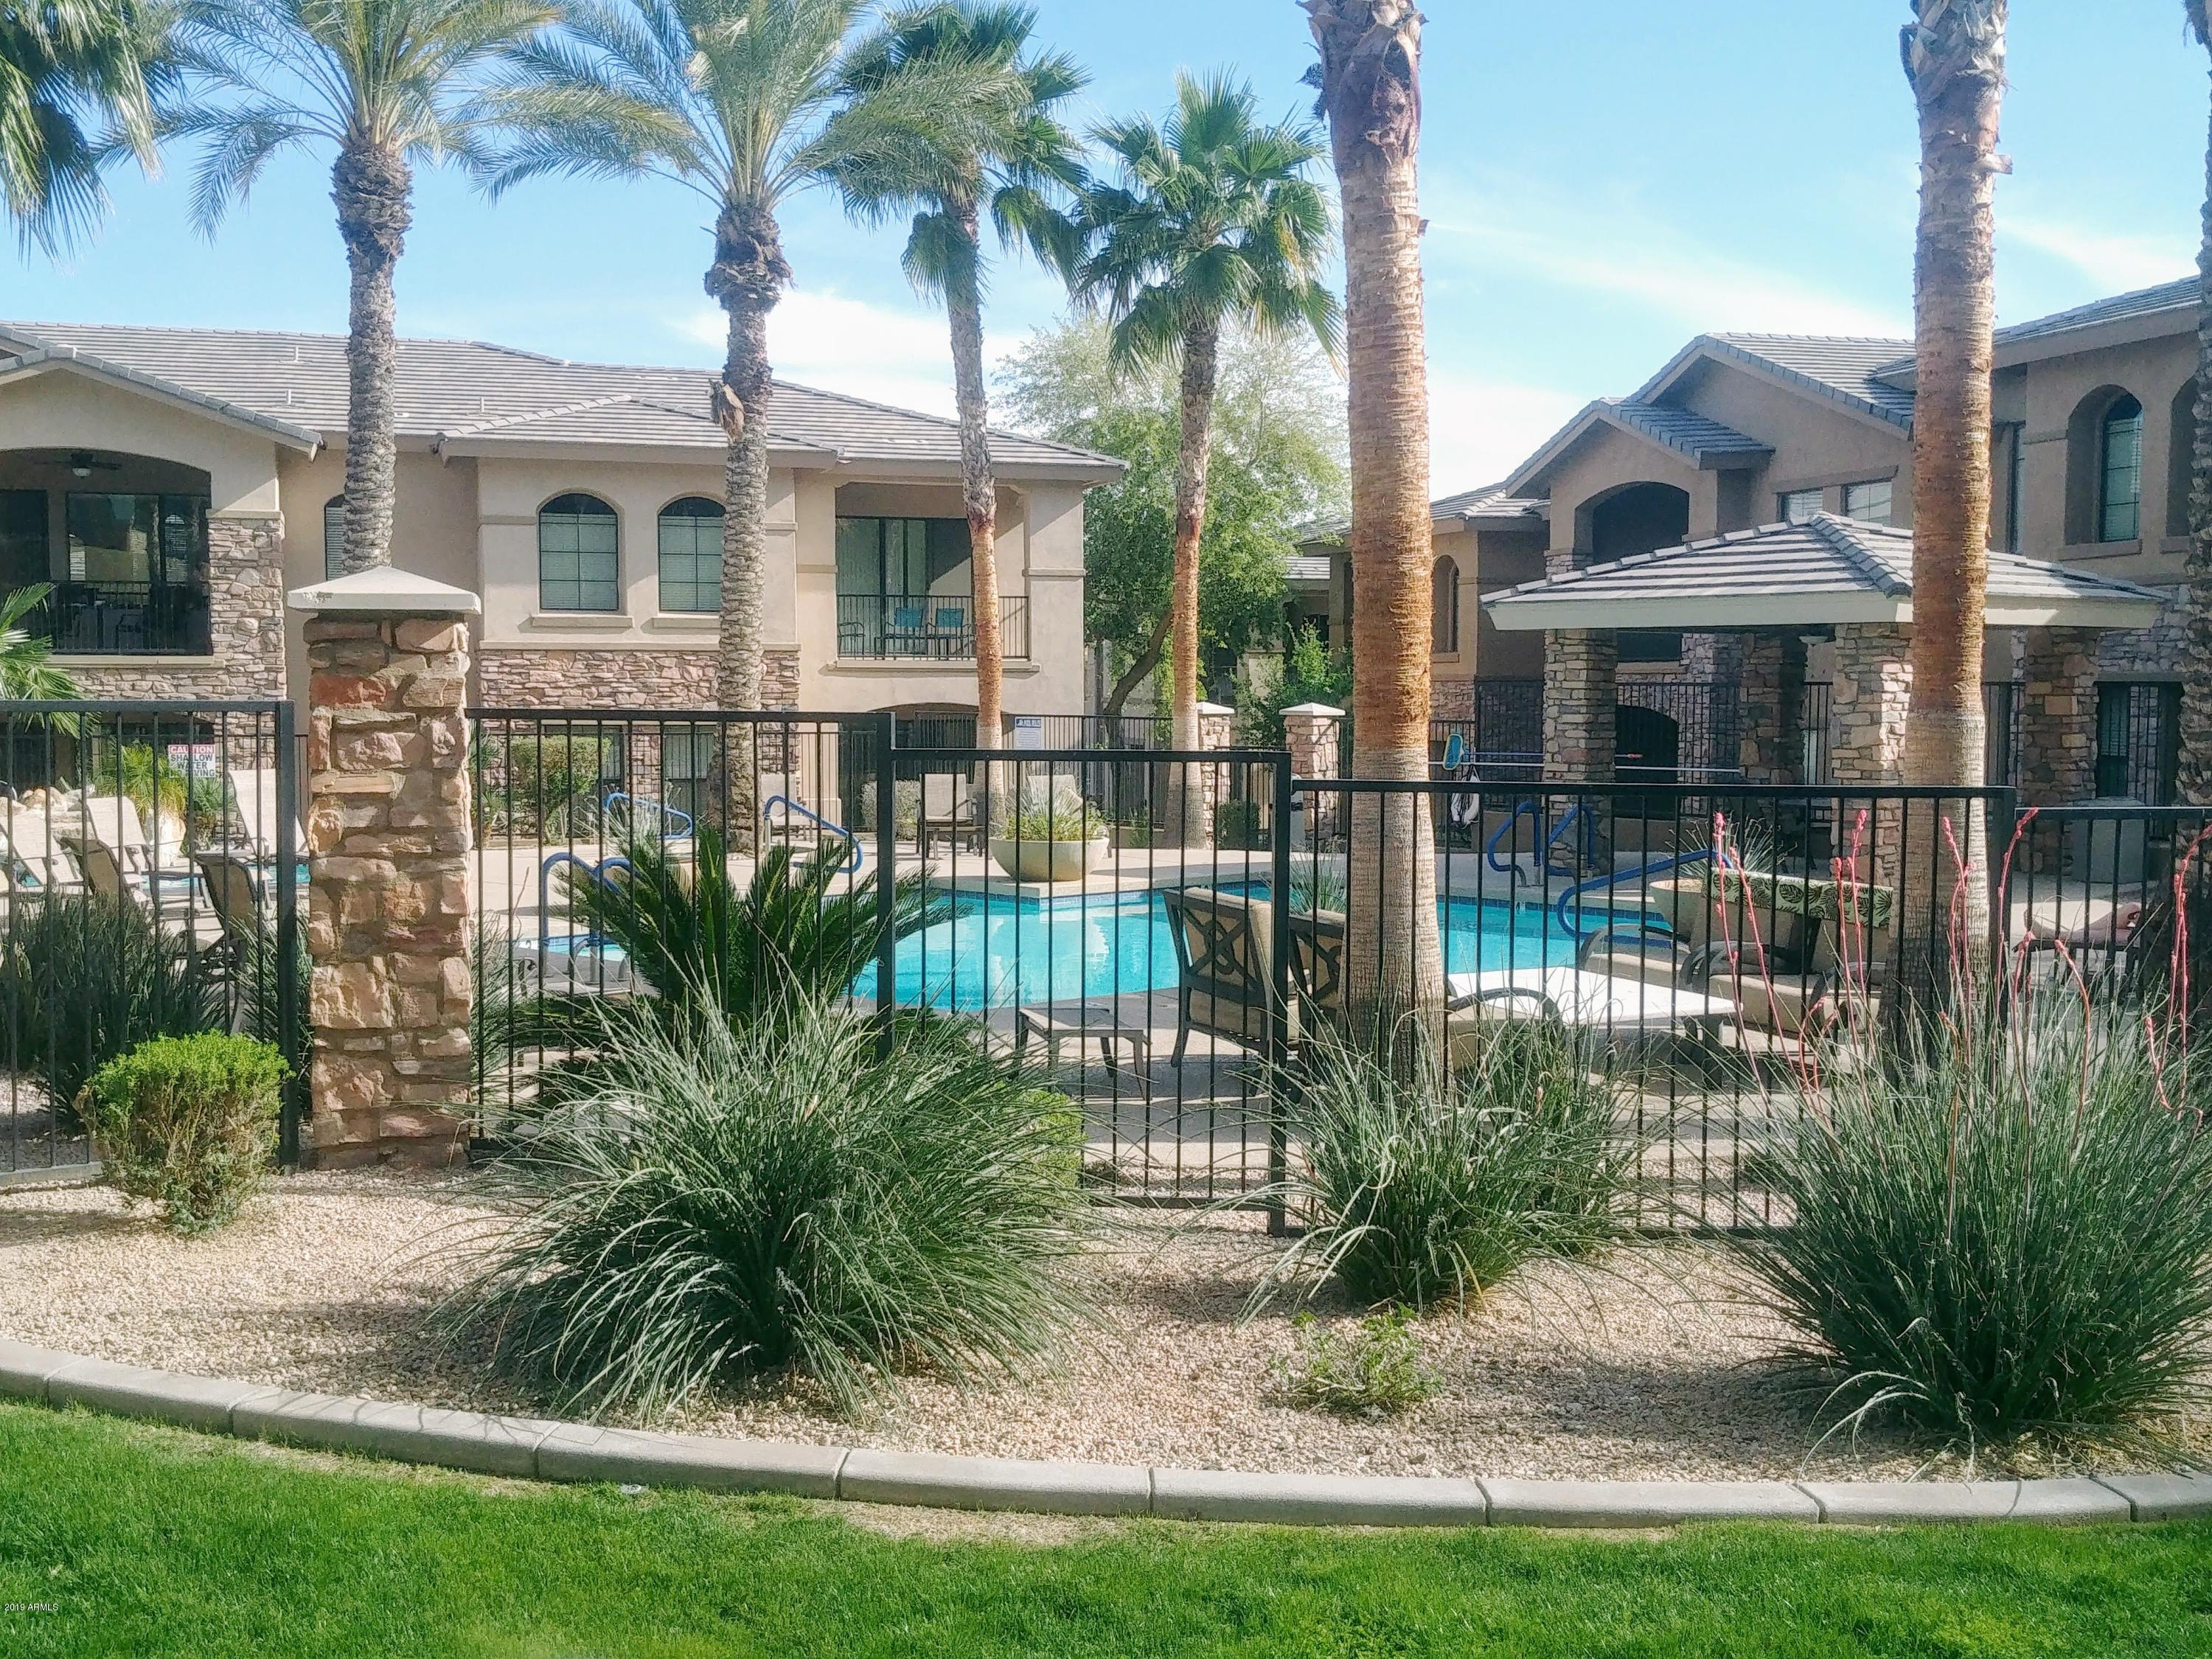 Photo of 15550 S 5TH Avenue #106, Phoenix, AZ 85045